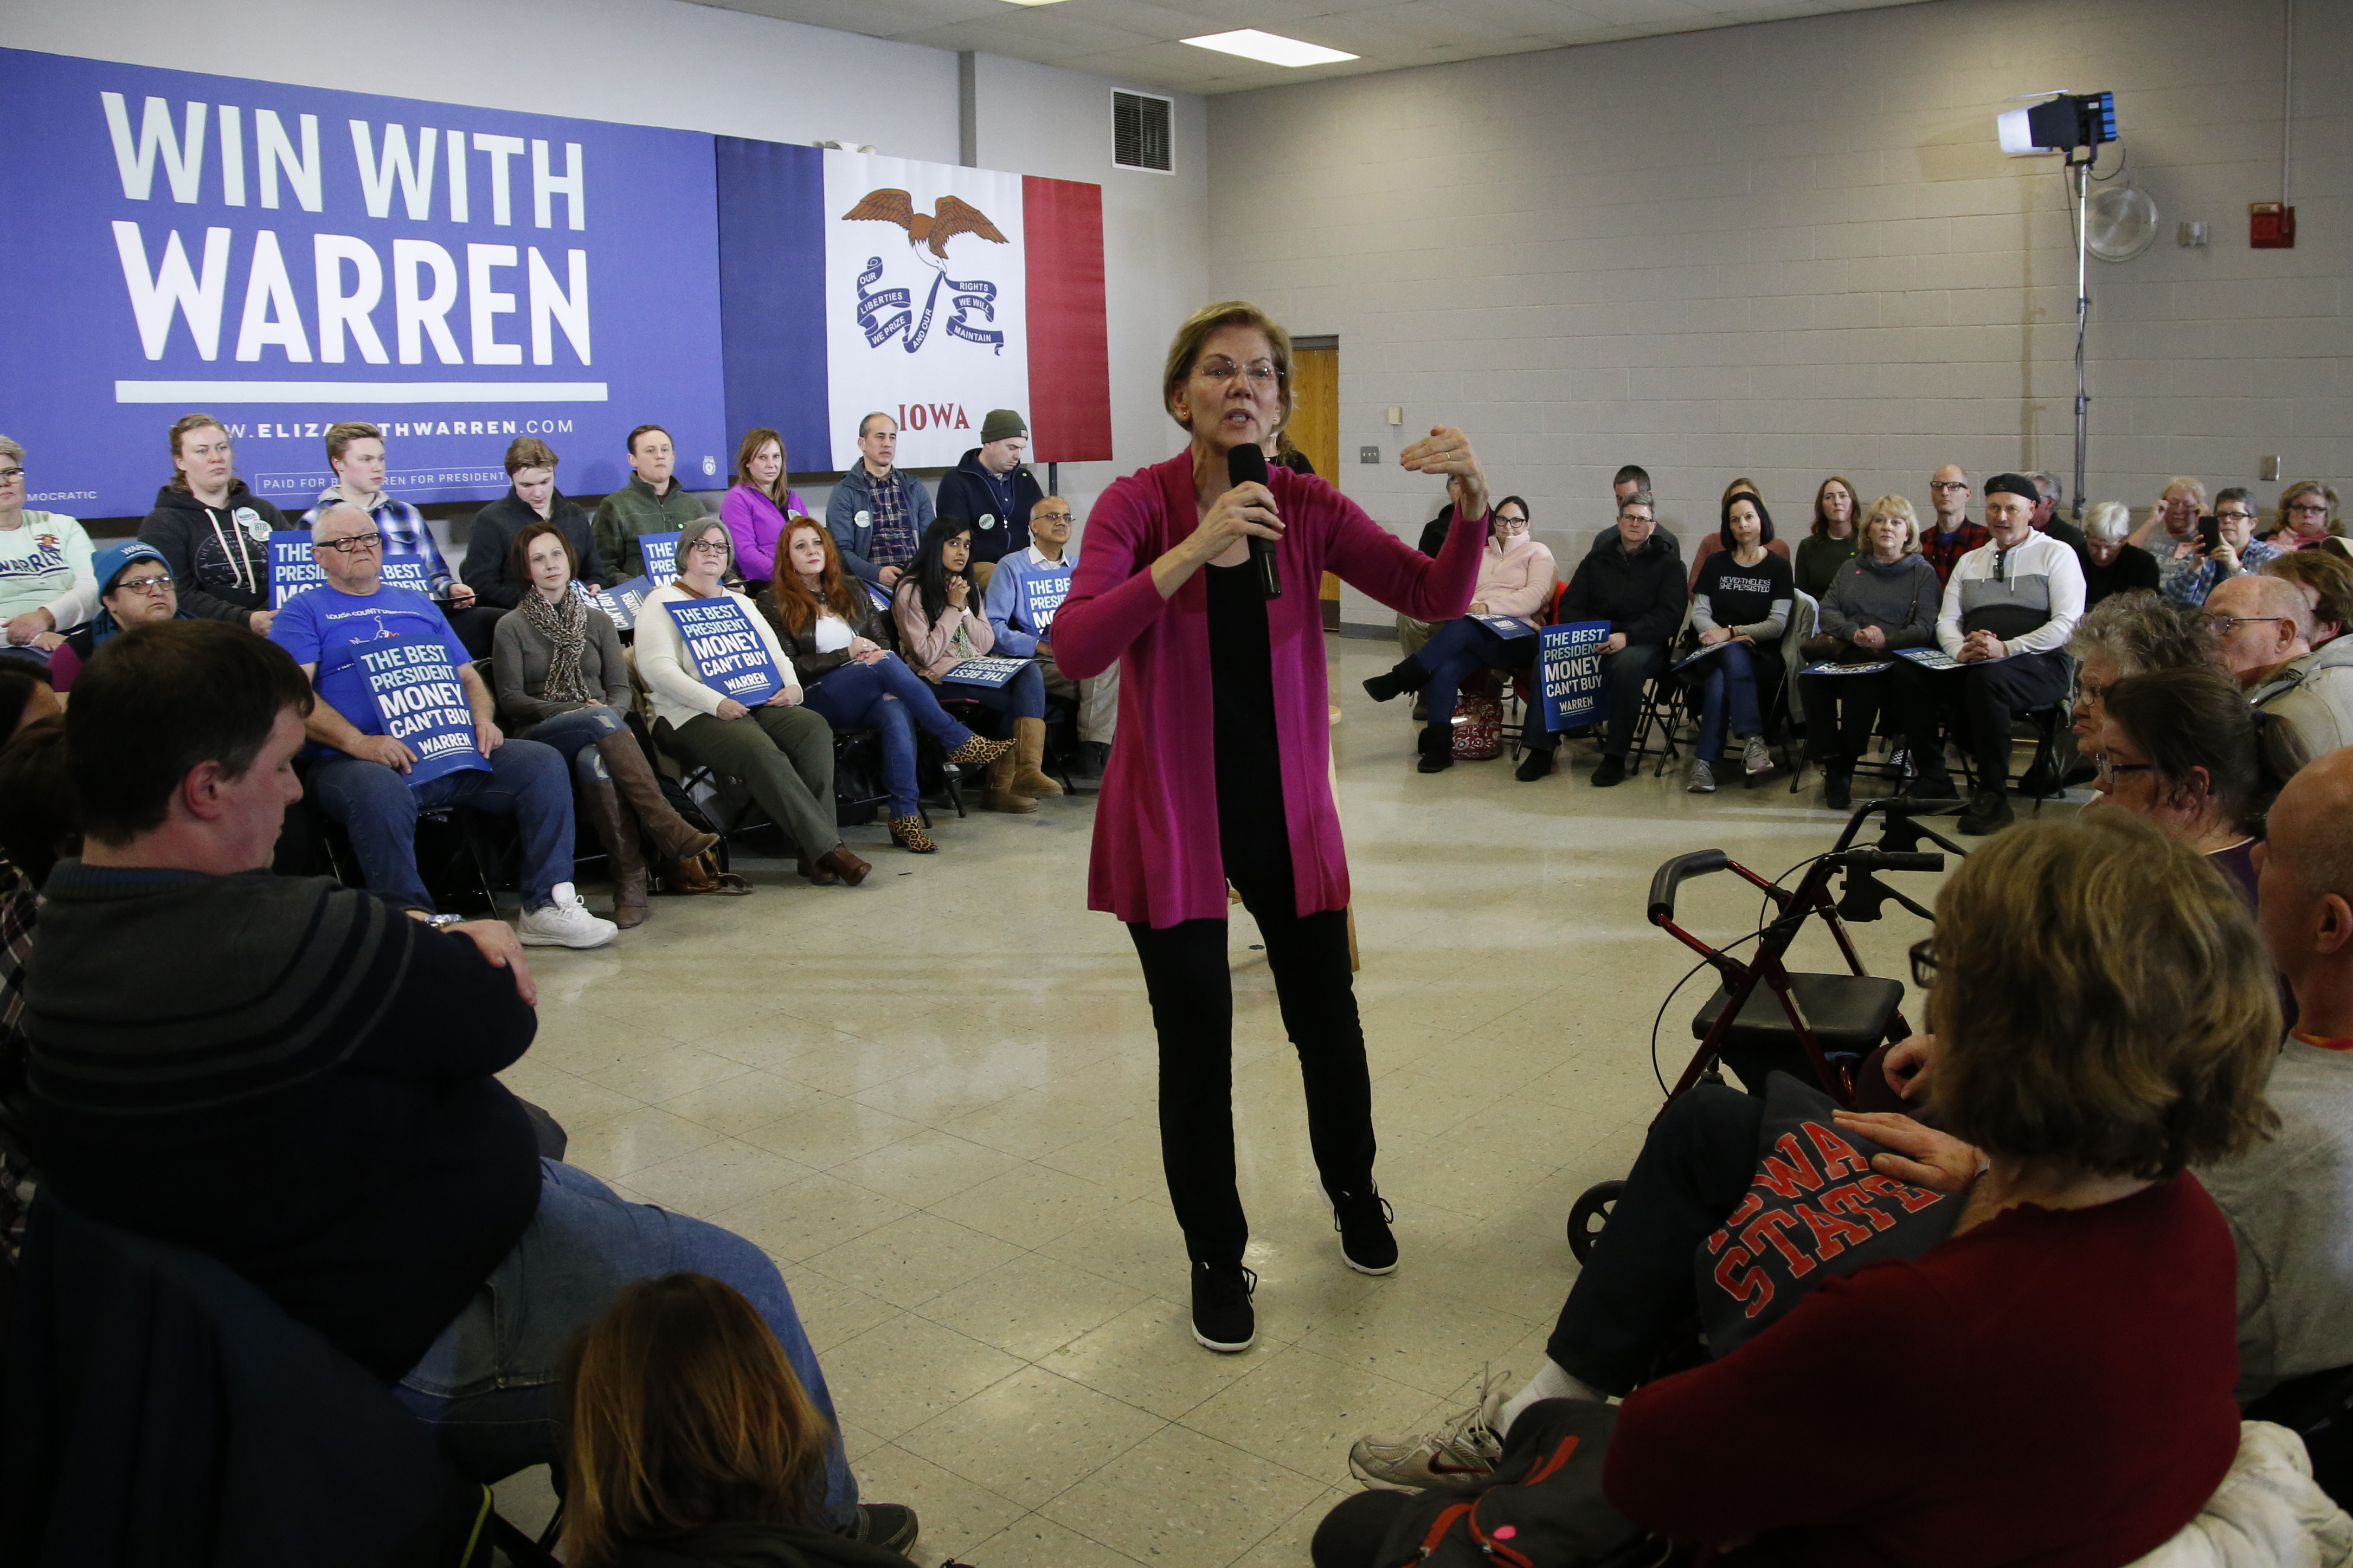 'She's tarnished': Elizabeth Warren tamps down Iowa expectations as liberal support drops